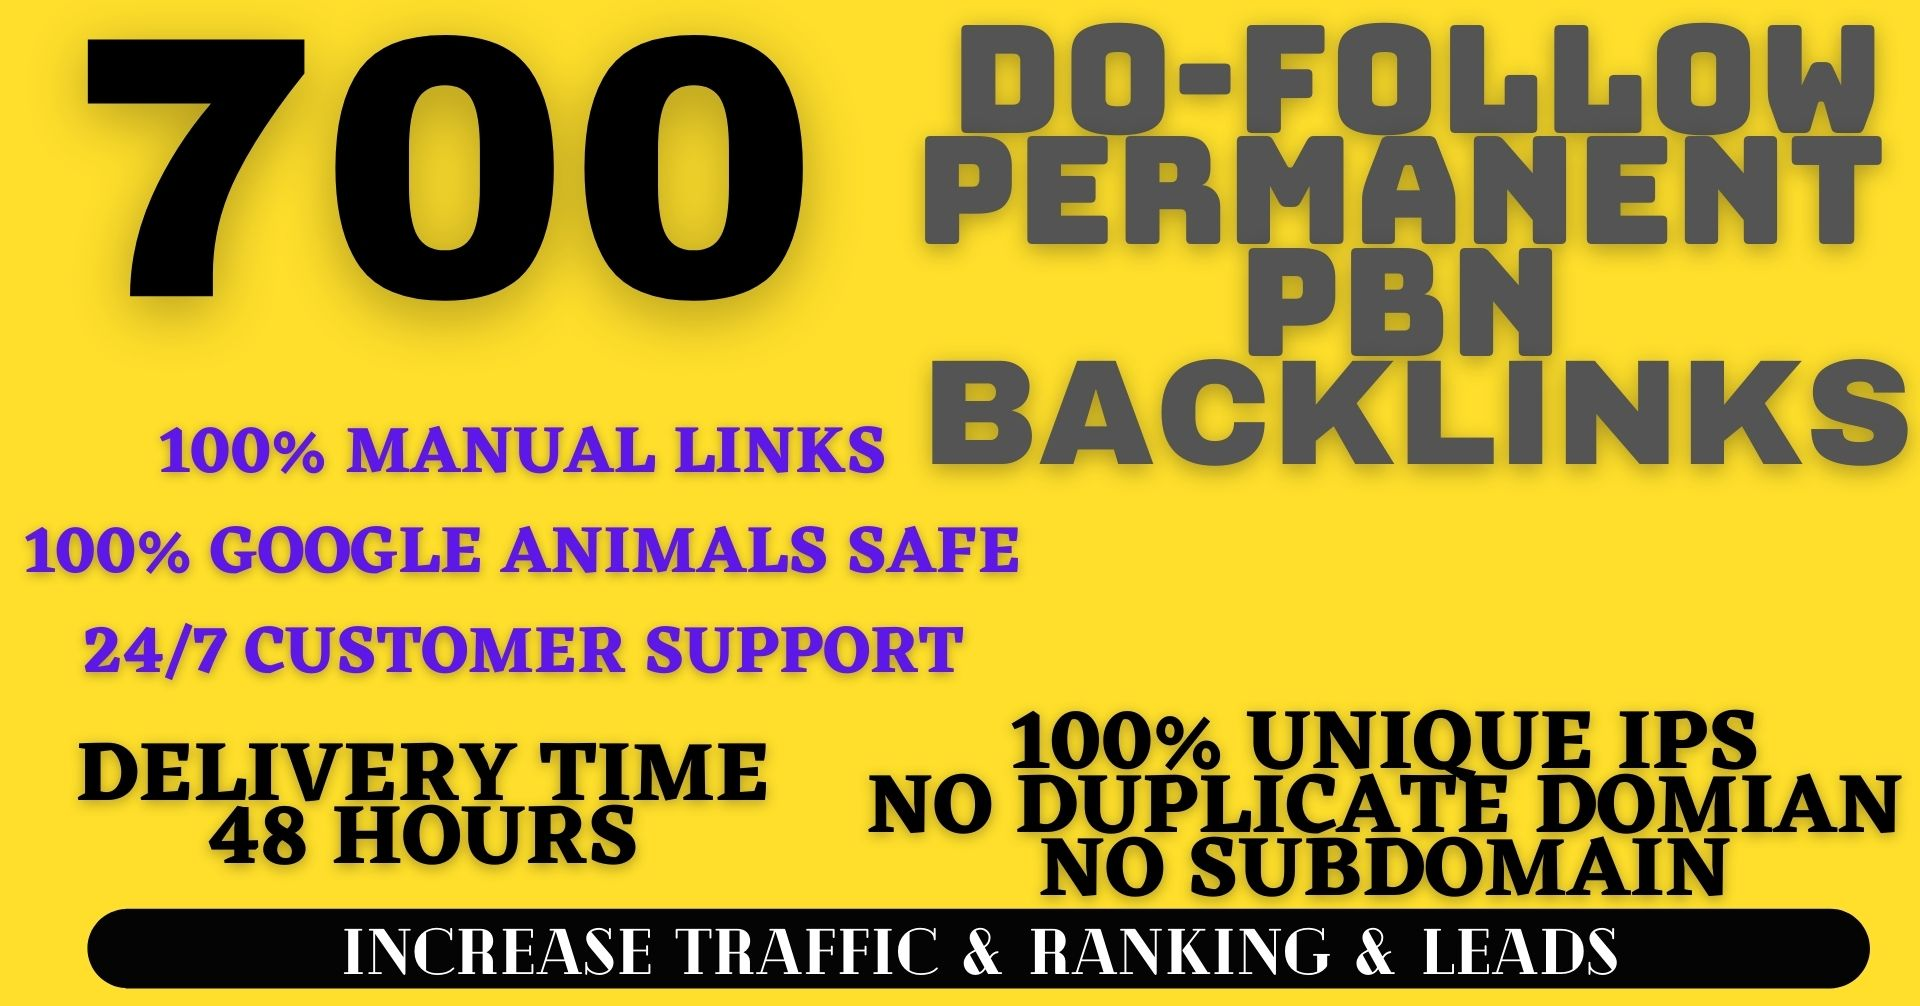 Get Extream 700+ PBN Backlink in your website hompage with HIGH DA/PA/TF/CF with unique website for